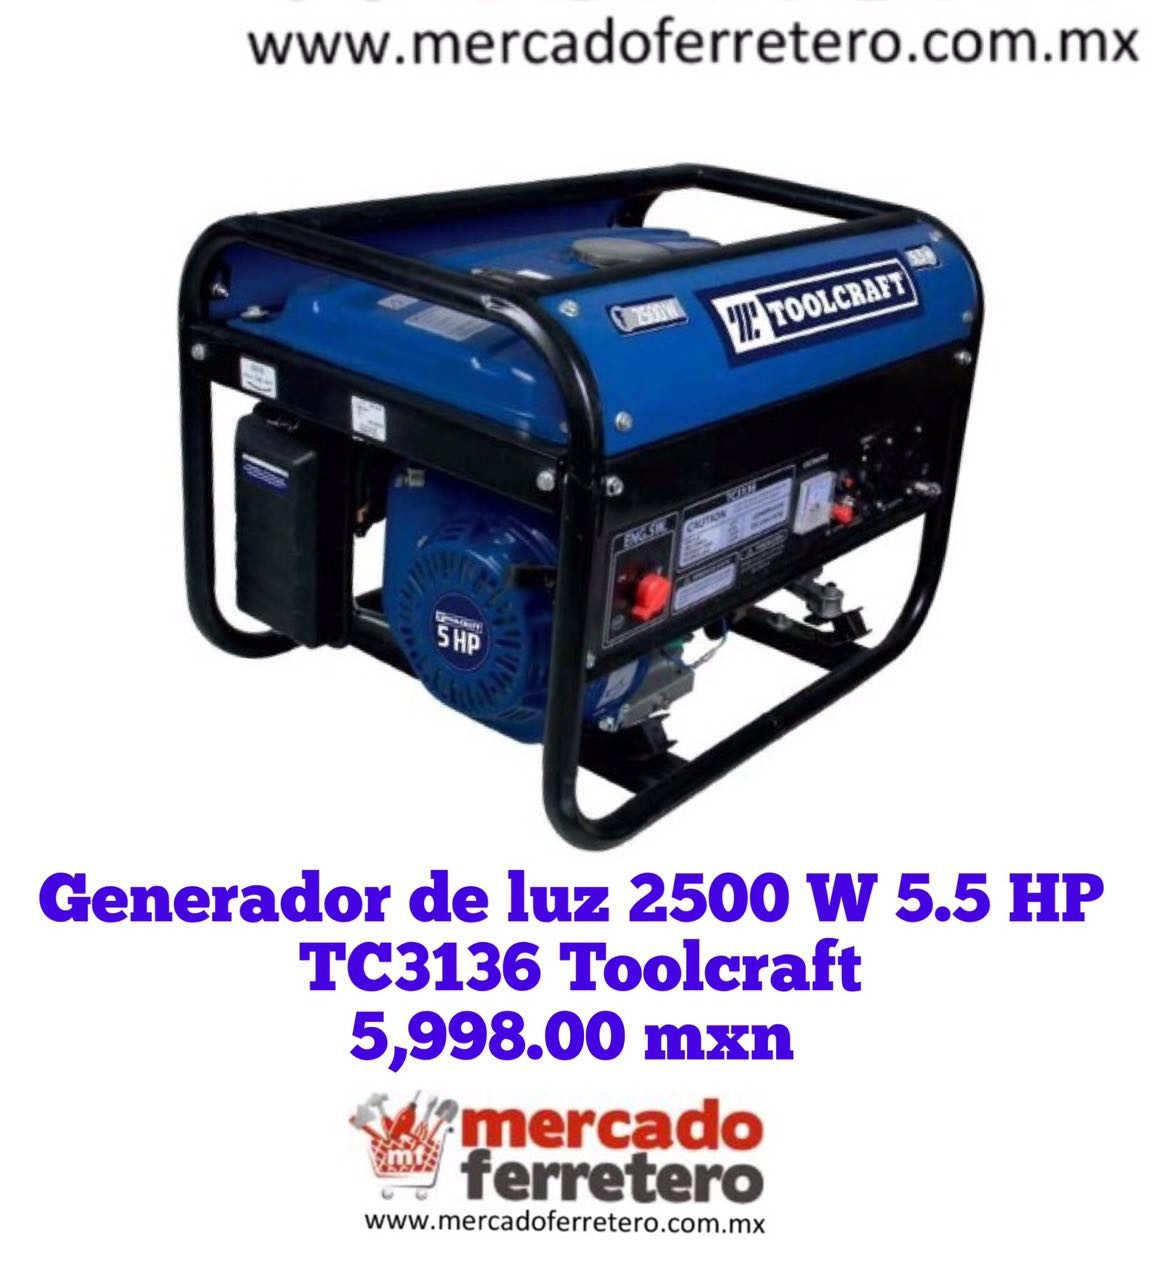 GENERADOR TOOLCRAFT TC3136 2500 W 5.5 HP